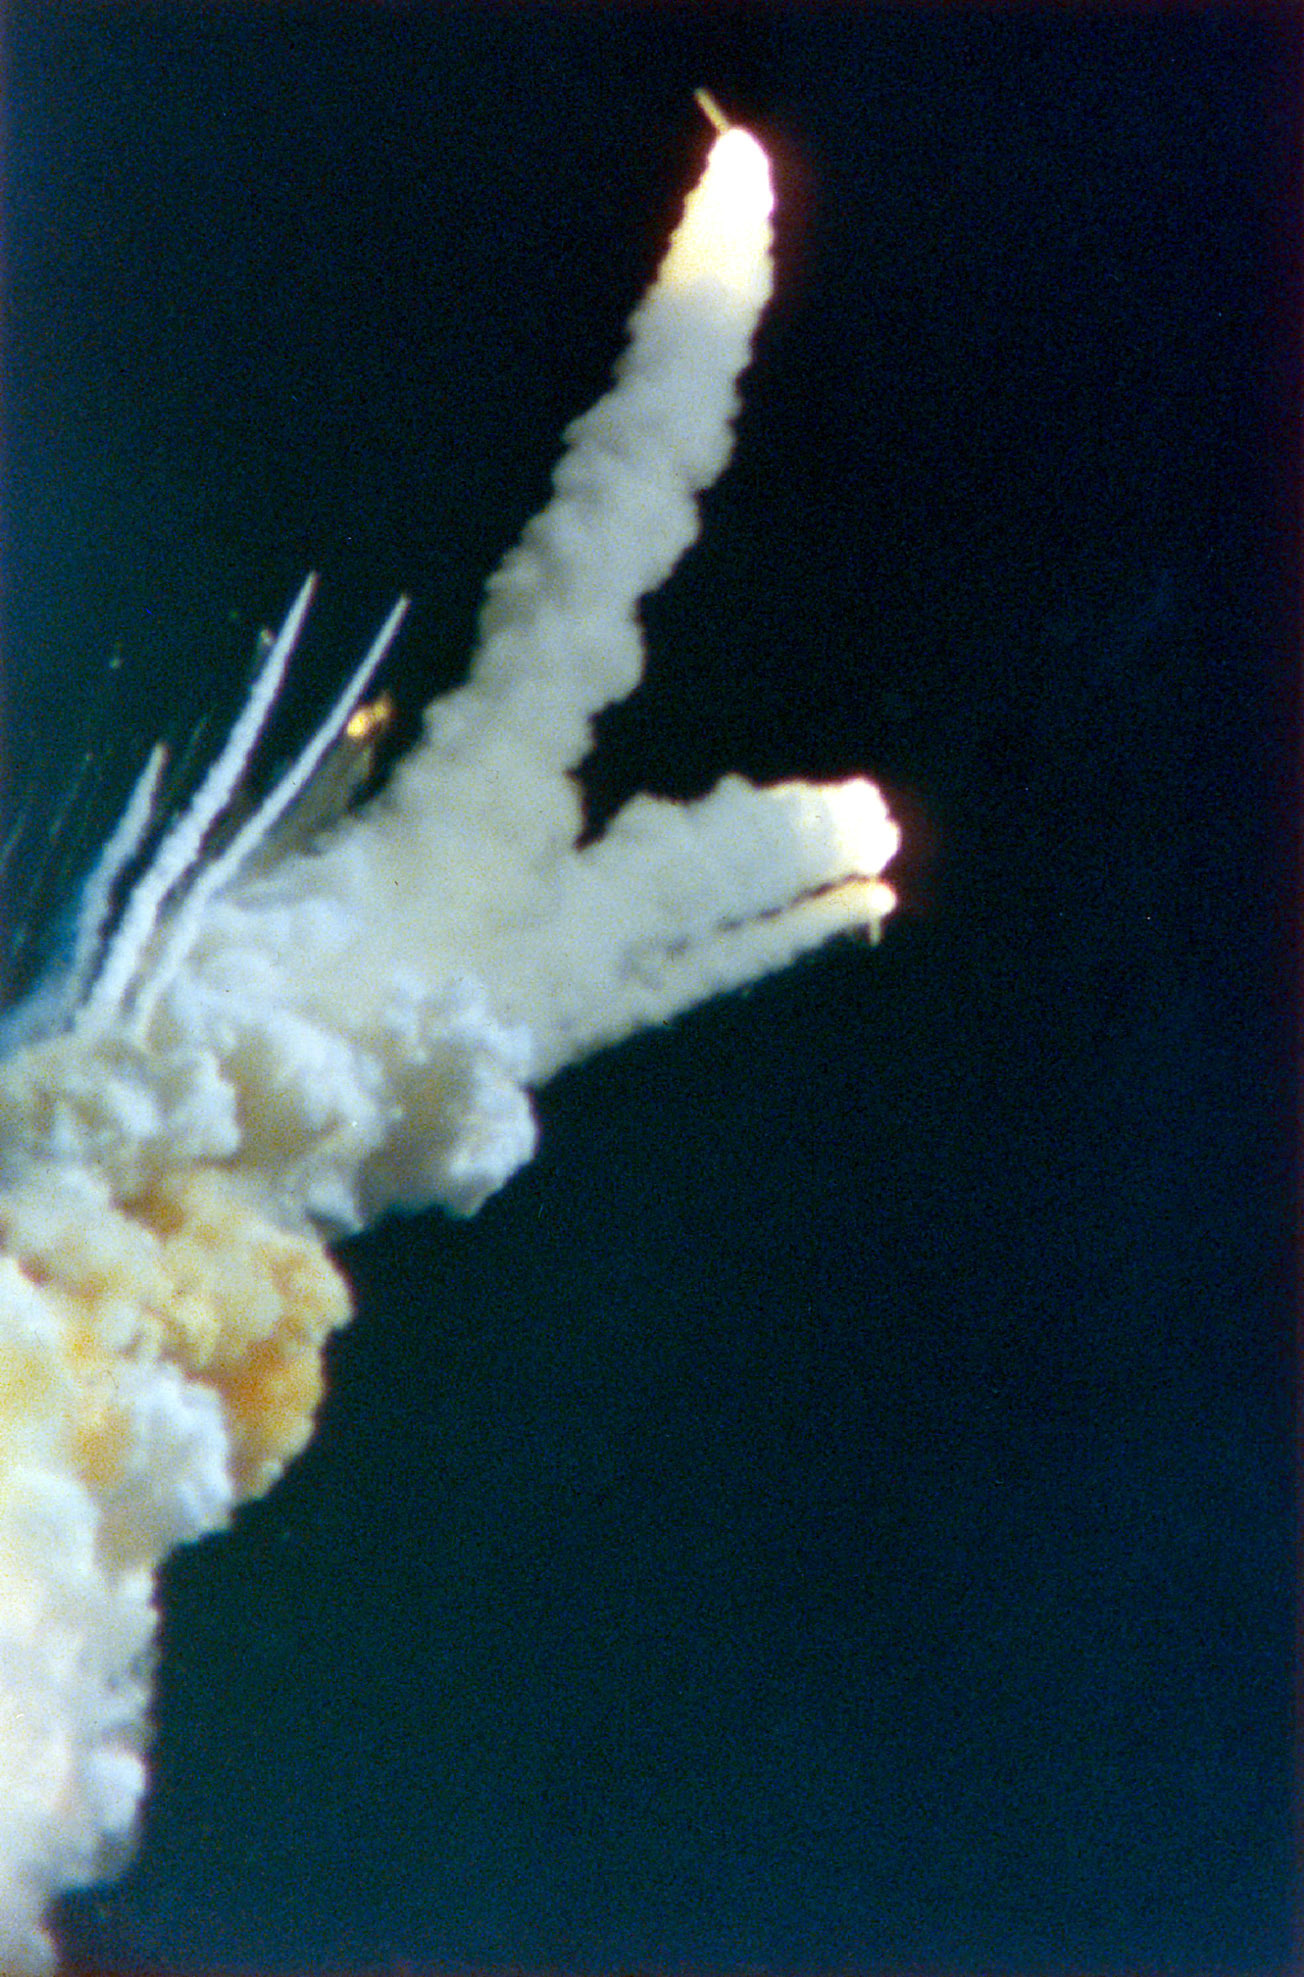 The Challenger space shuttle explodes. Credit: PA